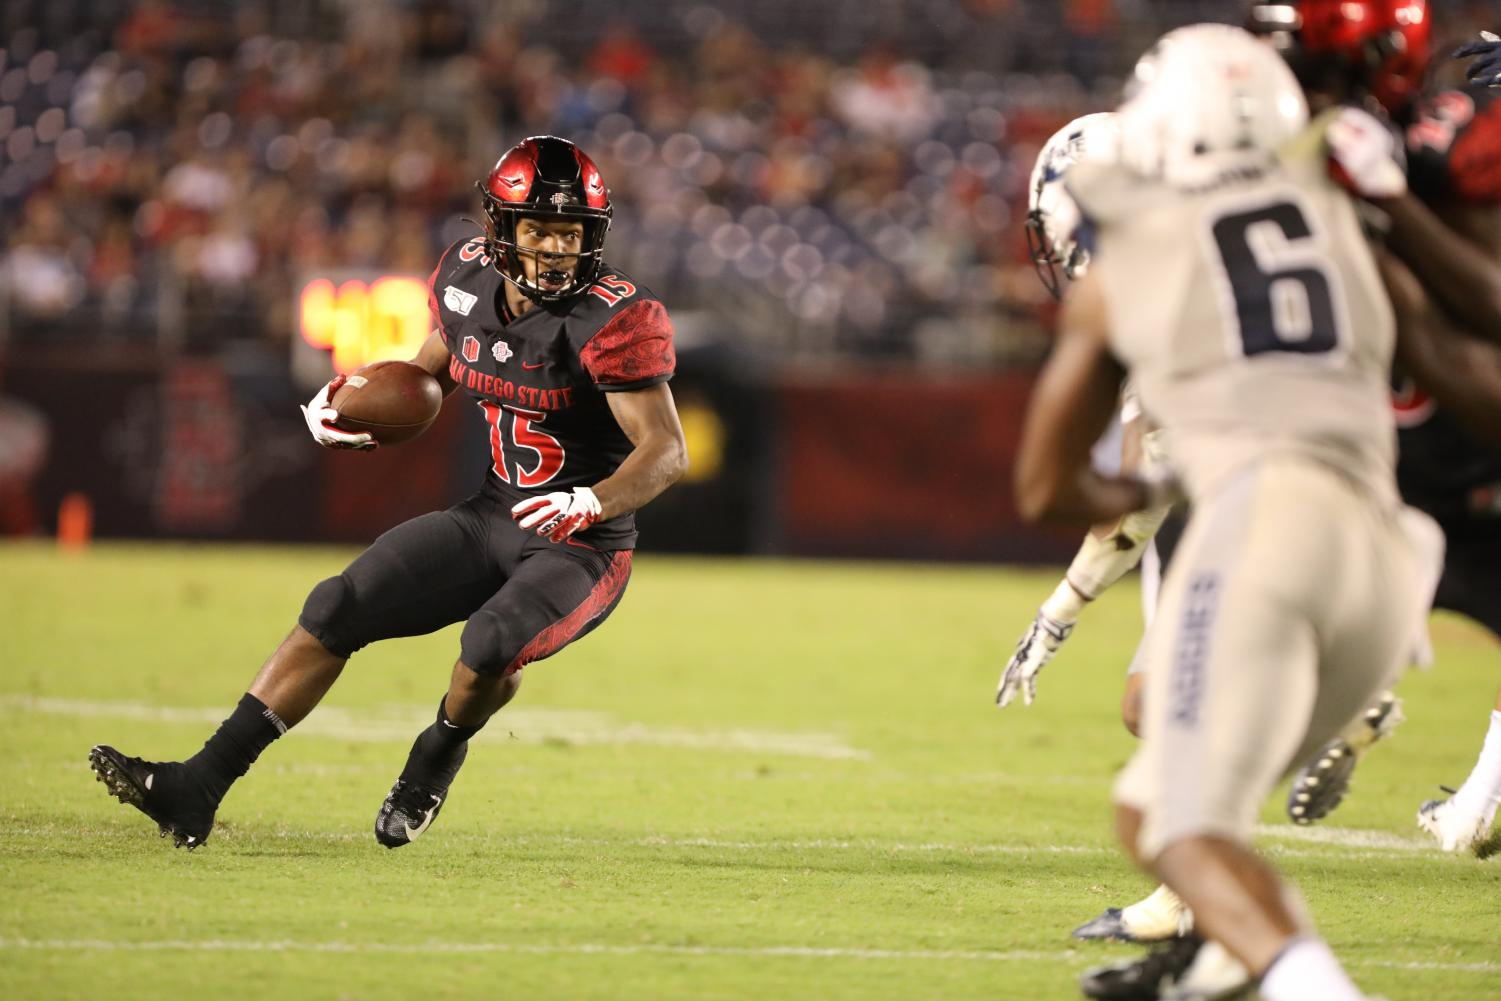 Sophomore running back Jordan Byrd rushes the ball during the Aztecs' 23-17 loss to Utah State on Sept. 21 at SDCCU Stadium.